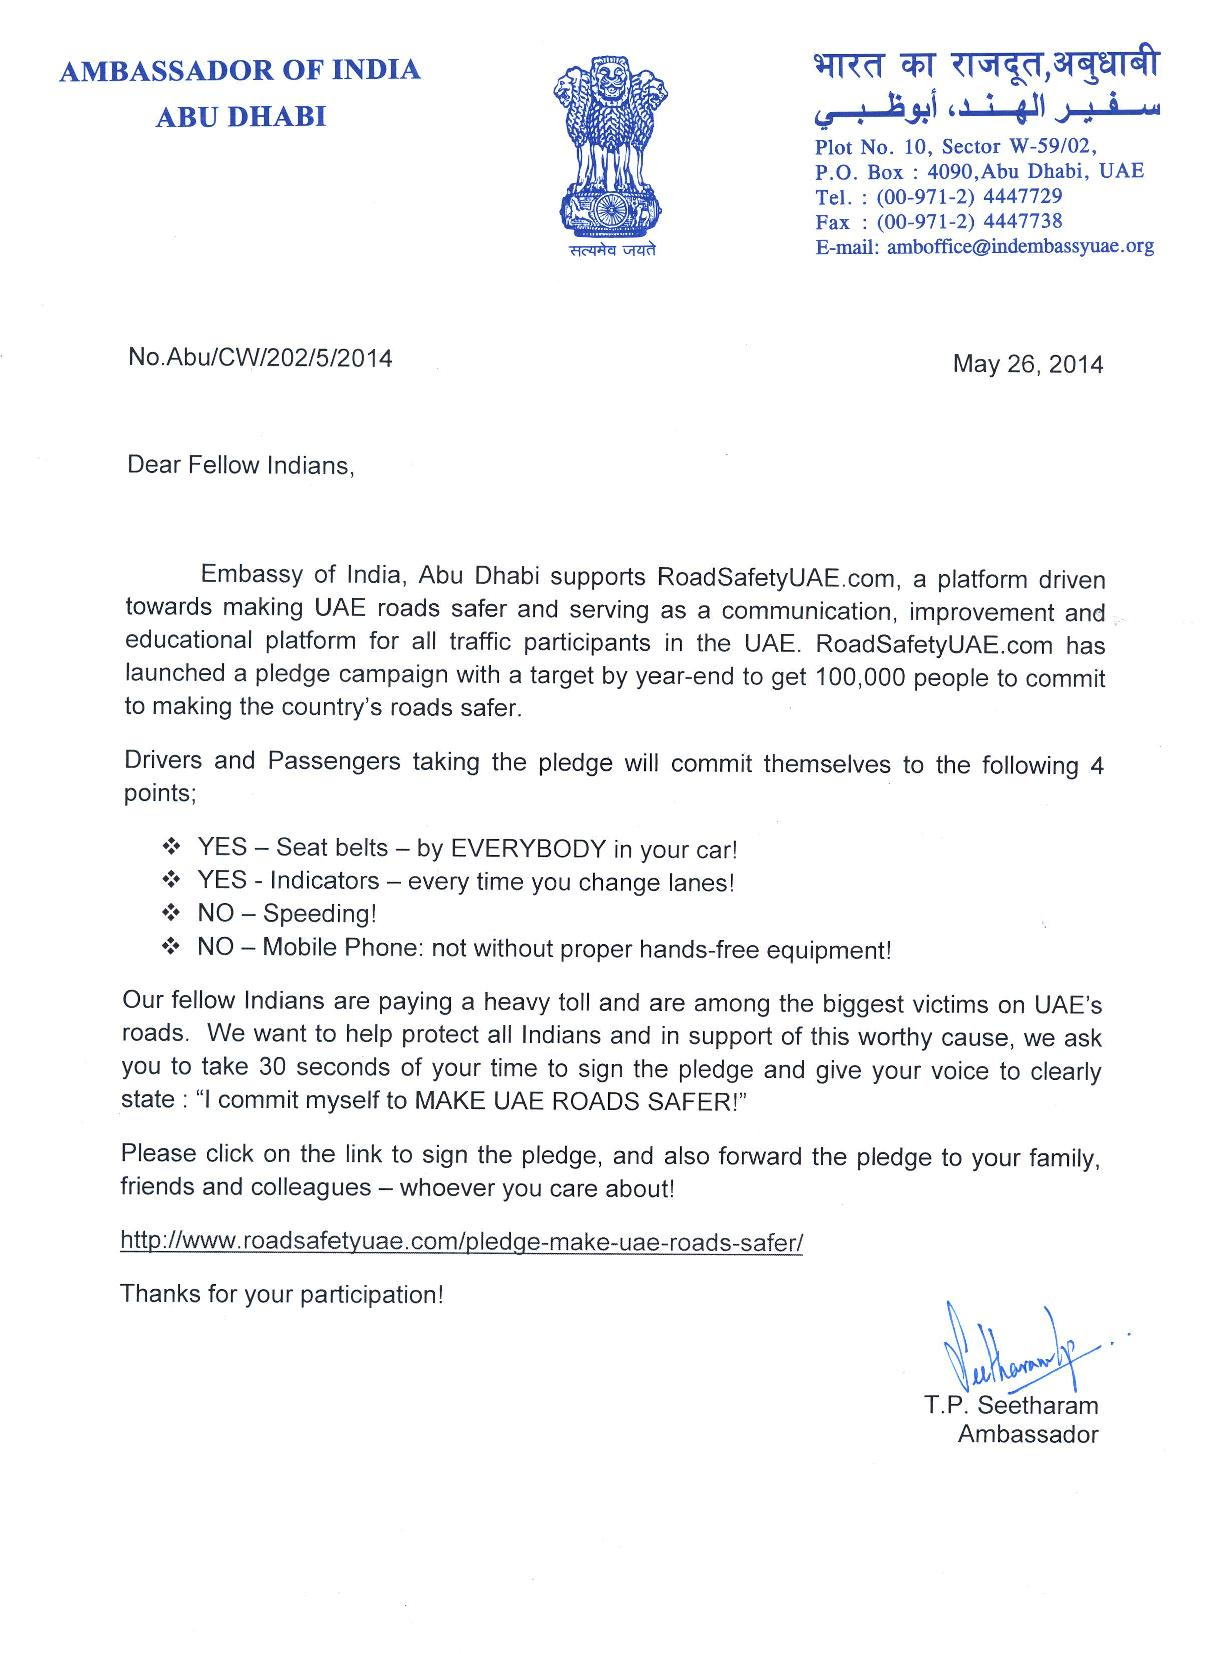 DO letter from Ambassador of India